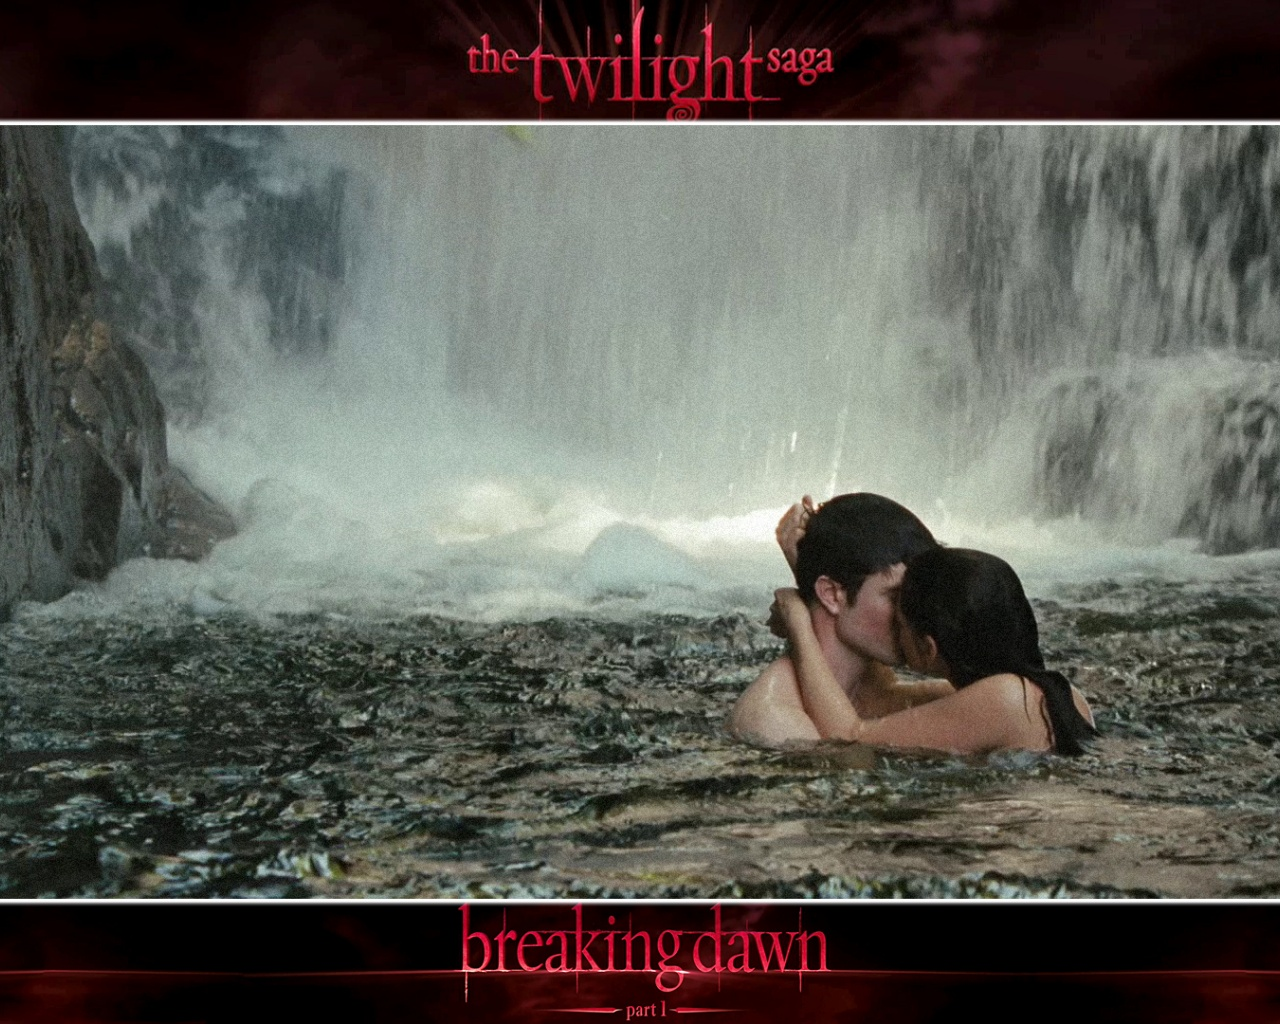 click to free download the wallpaper--TV Shows Pic, Edward and Bella Naked by Waterfall, Kissing Each Other, Be Together! 1280X1024 free wallpaper download